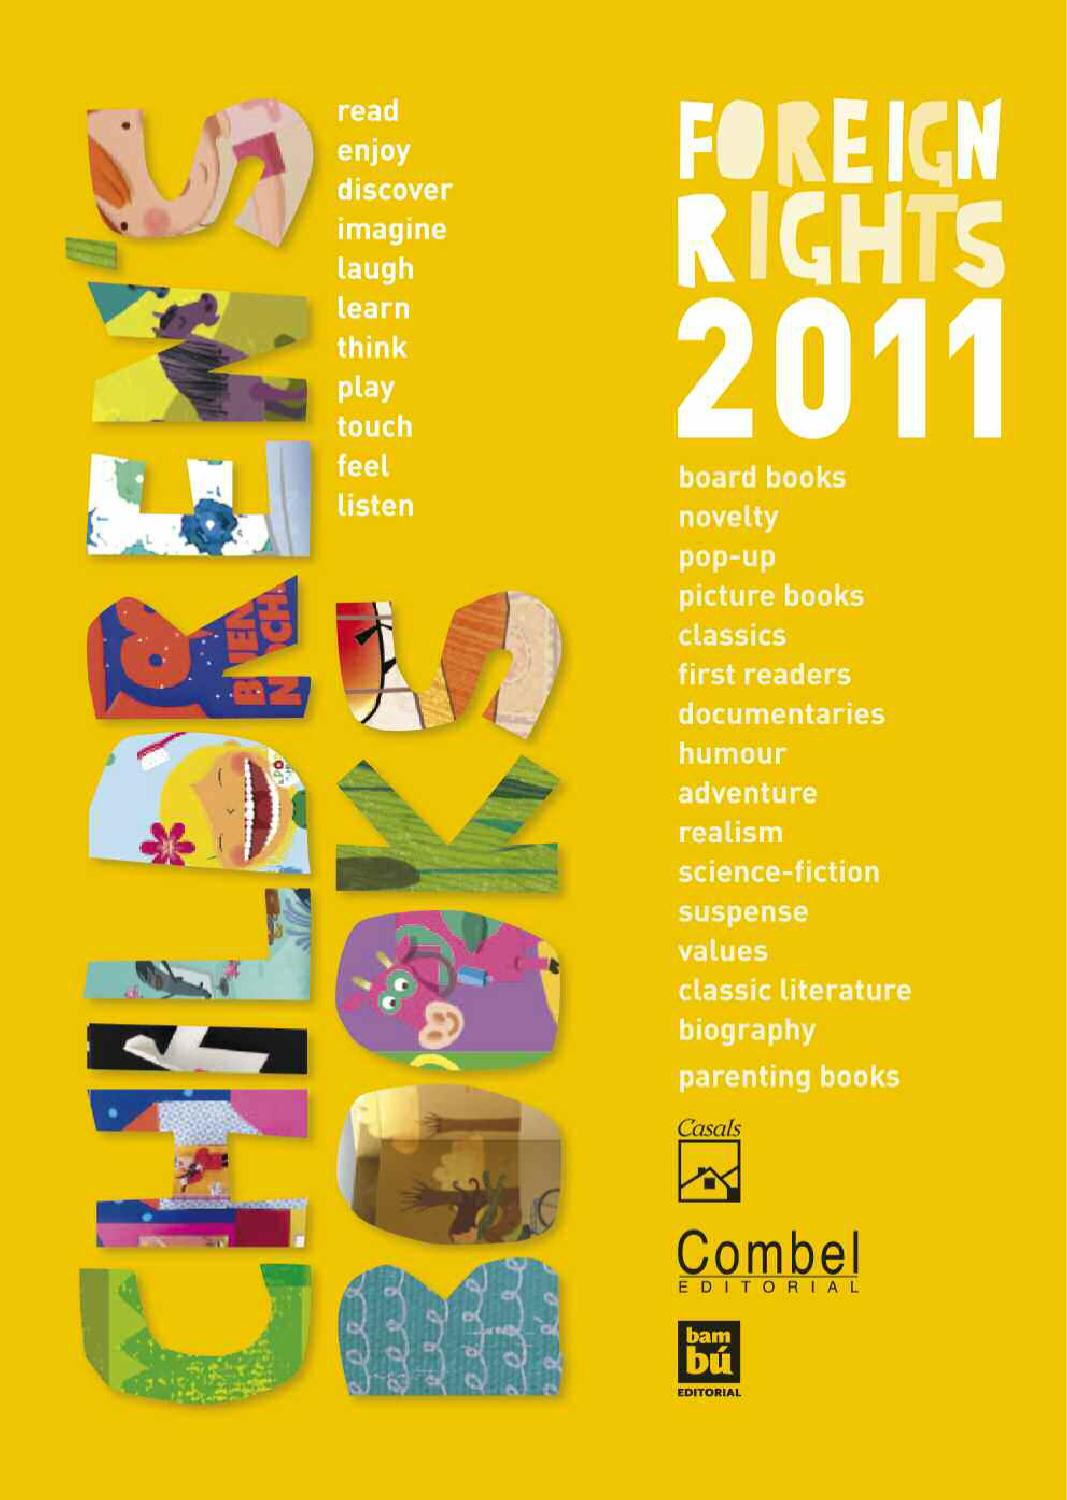 edec65dc128 Foreign Rights 2011 by Editorial Casals - issuu